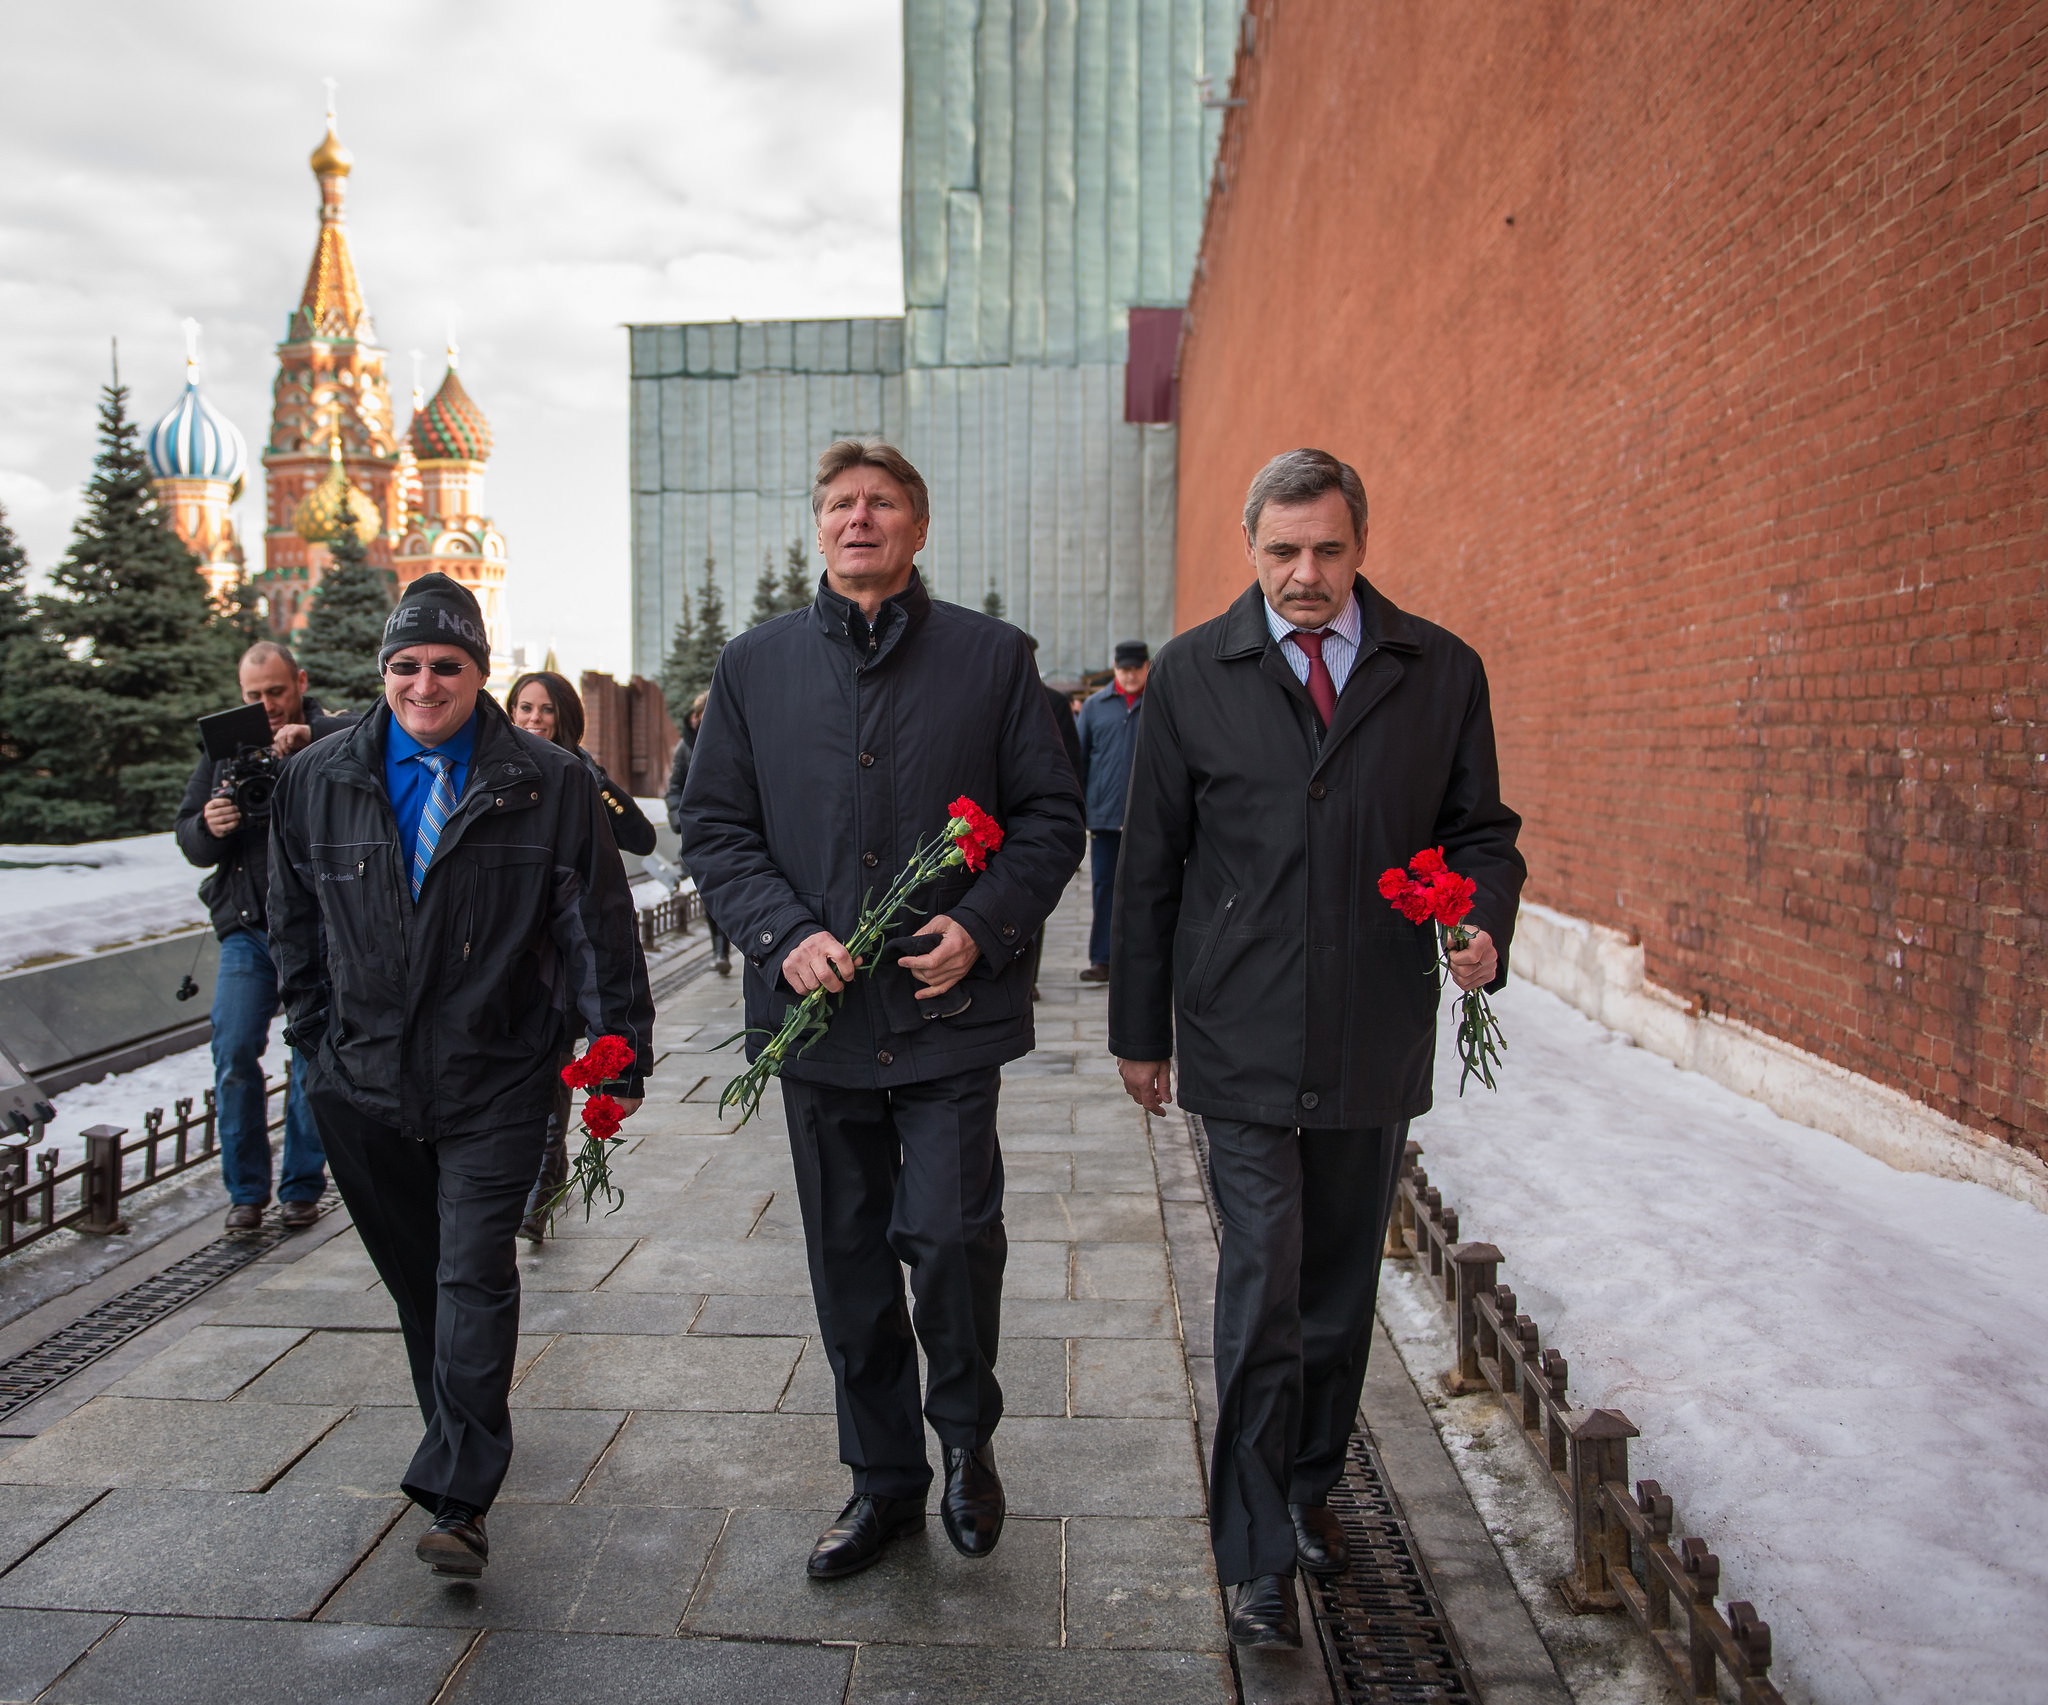 Expedition 43 NASA Astronaut Scott Kelly, left, Russian cosmonaut Gennady Padalka of the Russian Federal Space Agency (Roscosmos), center, and Russian cosmonaut Mikhail Kornienko of Roscosmos walk along the Kremlin Wall in Red Square to leave roses at the site where Russian space icons are interred as part of traditional pre-launch ceremonies, Friday, March 6, 2015, Moscow, Russia